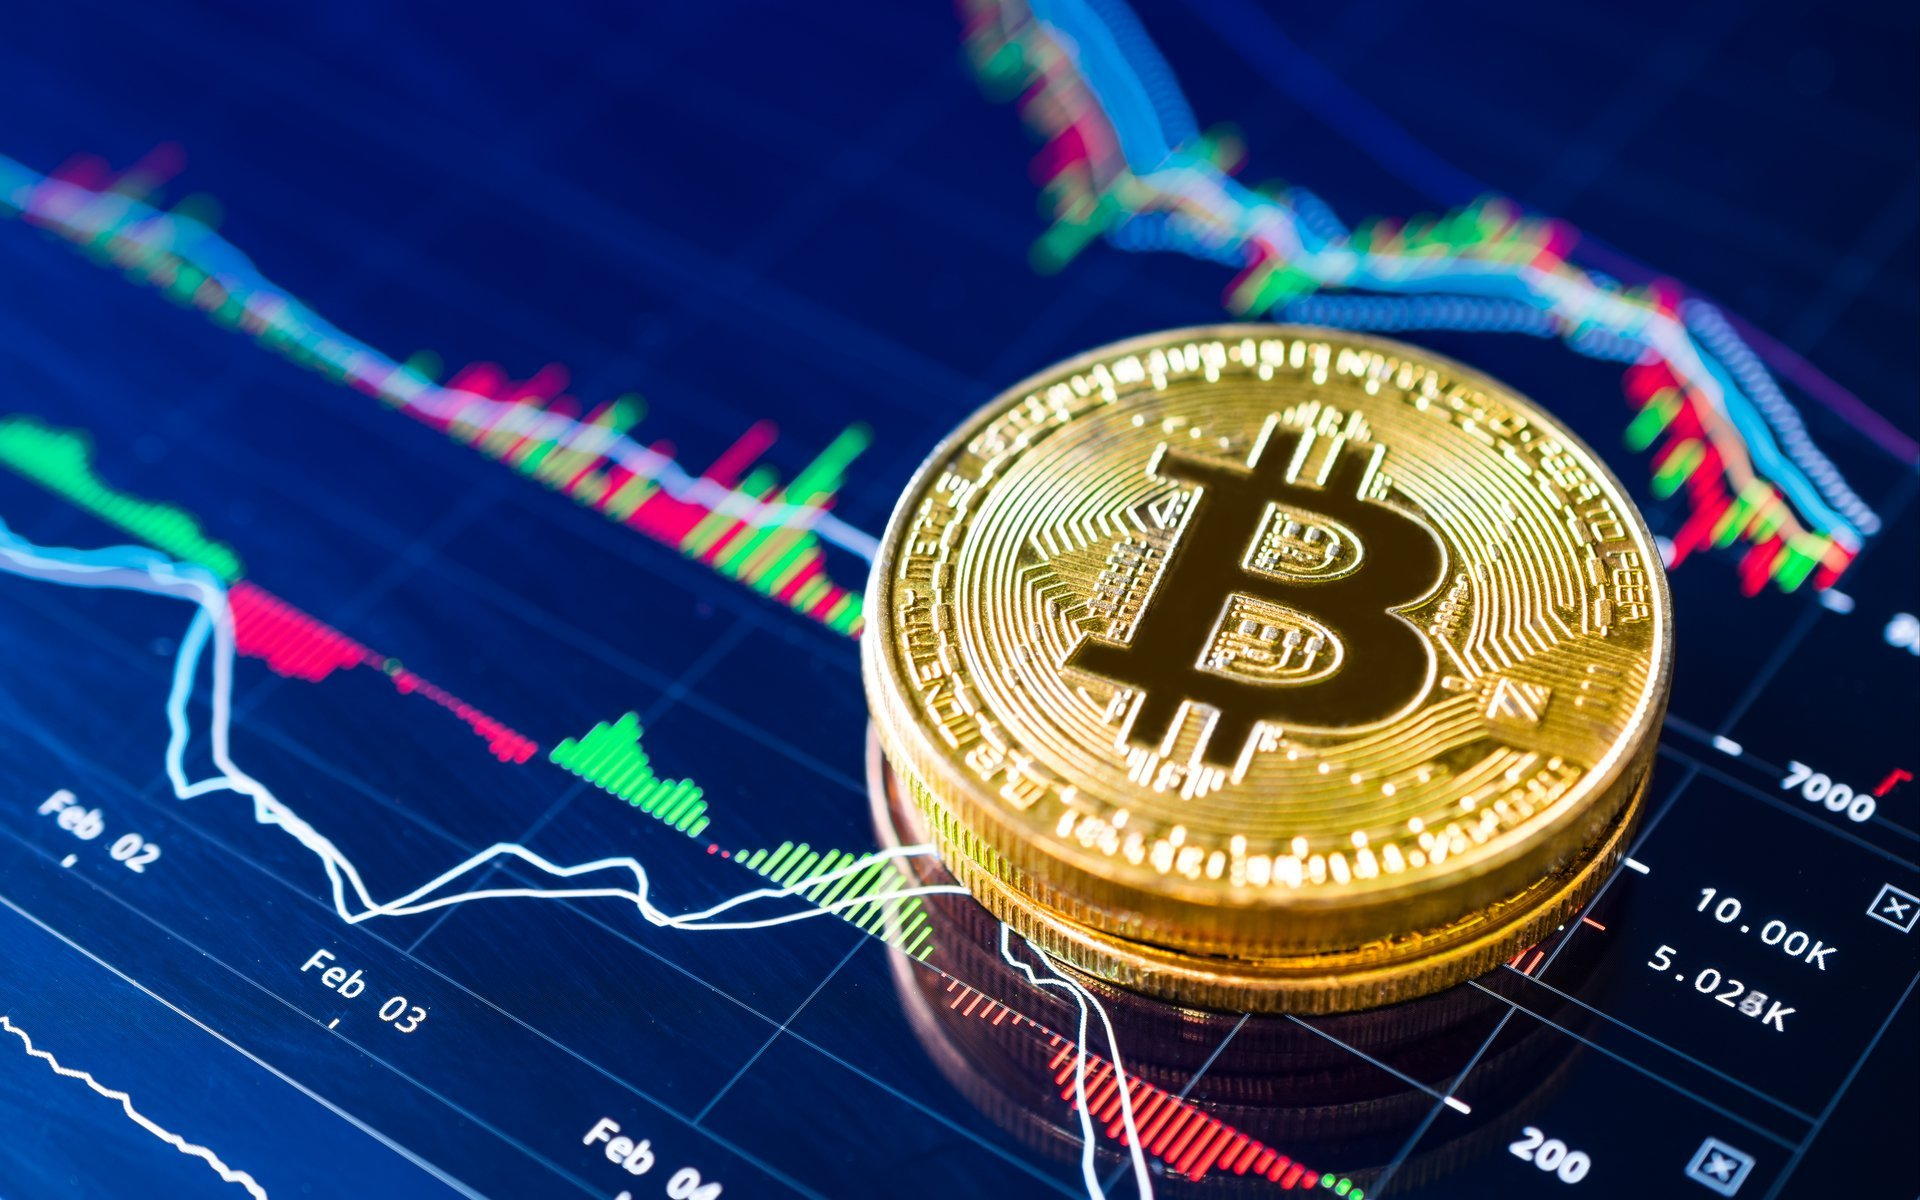 Bitcoin Price to Drop to $4,000 Before Bouncing to $10,000 ...